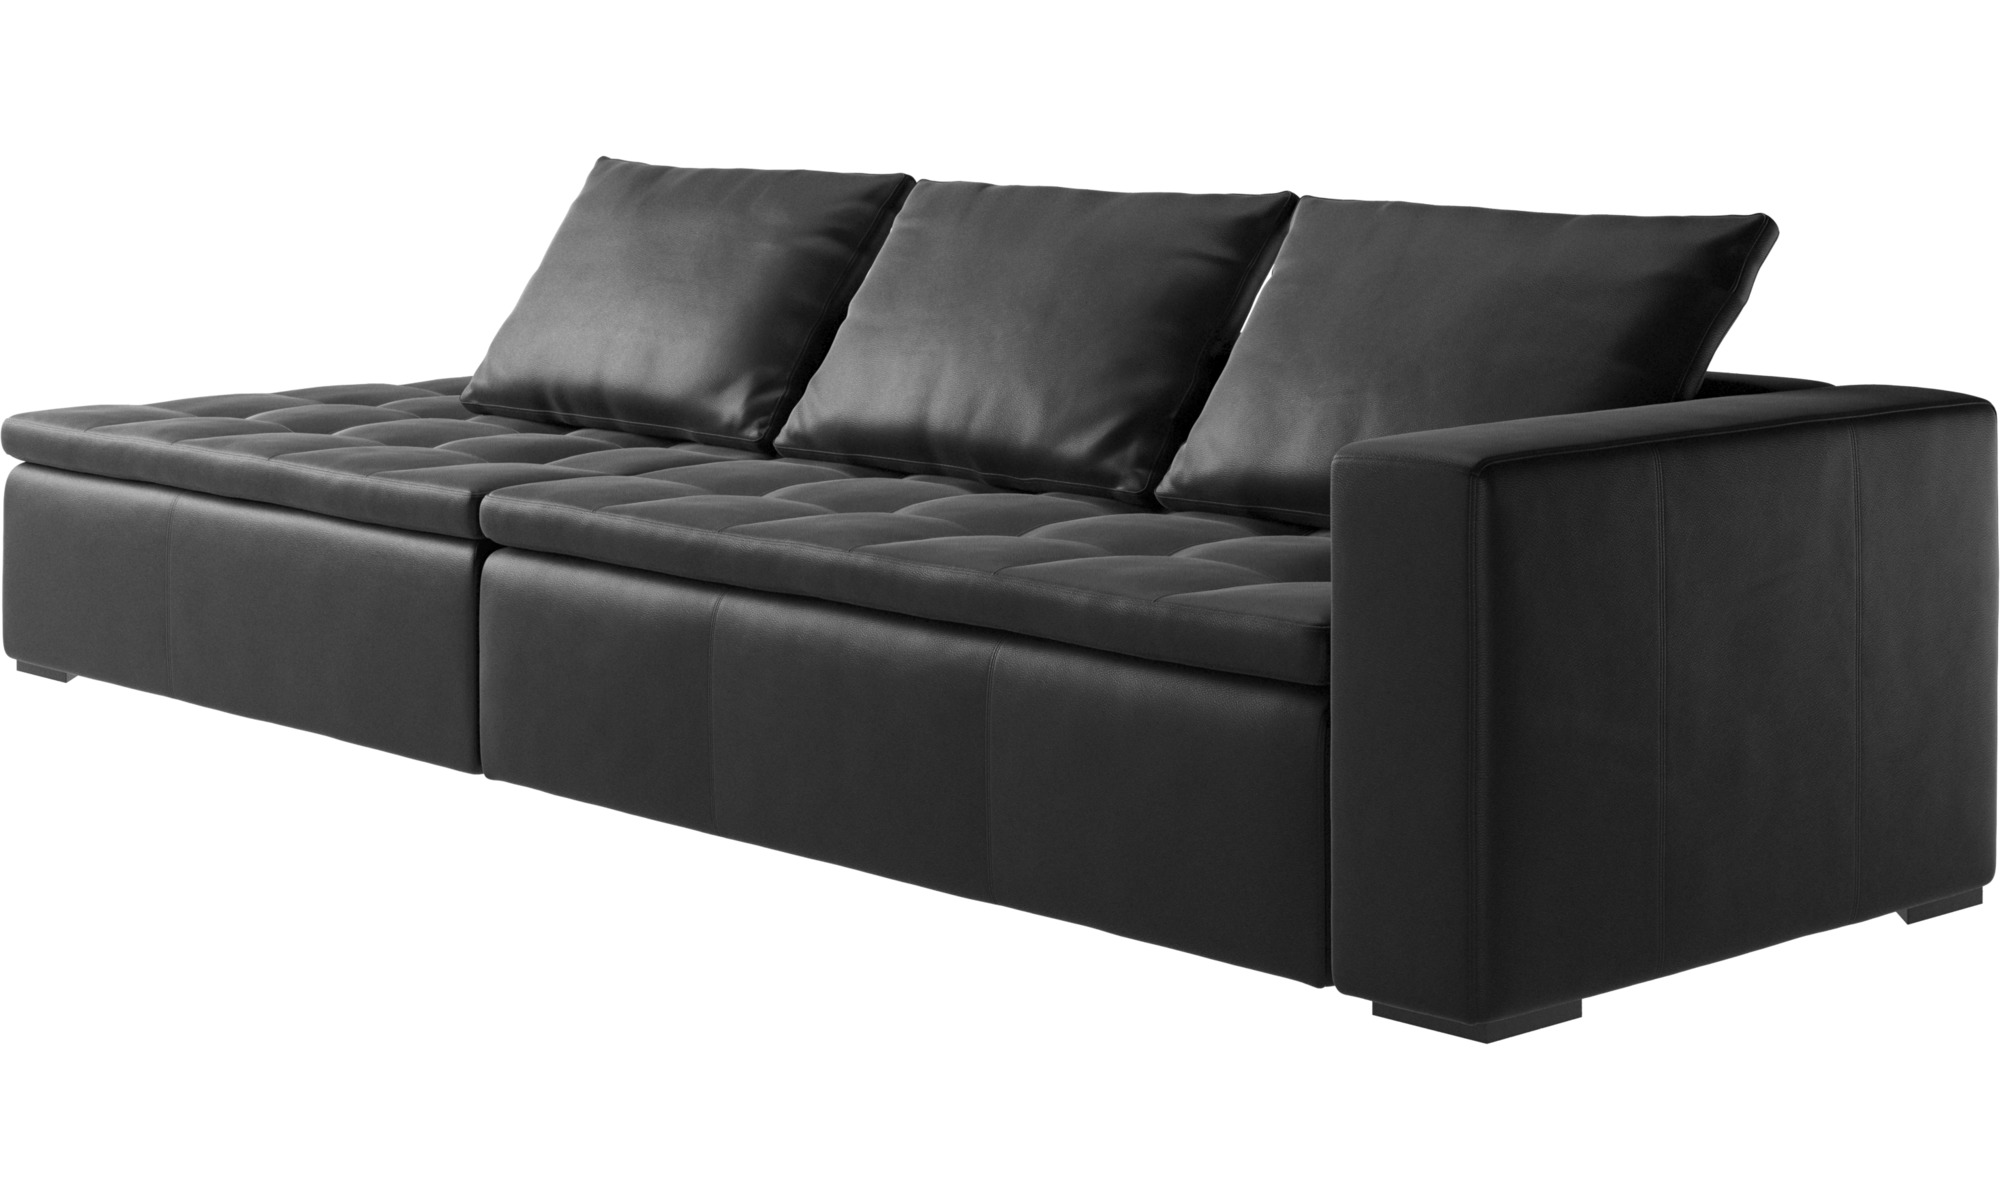 sofaer med hvilemodul mezzo sofa med loungemodul boconcept. Black Bedroom Furniture Sets. Home Design Ideas